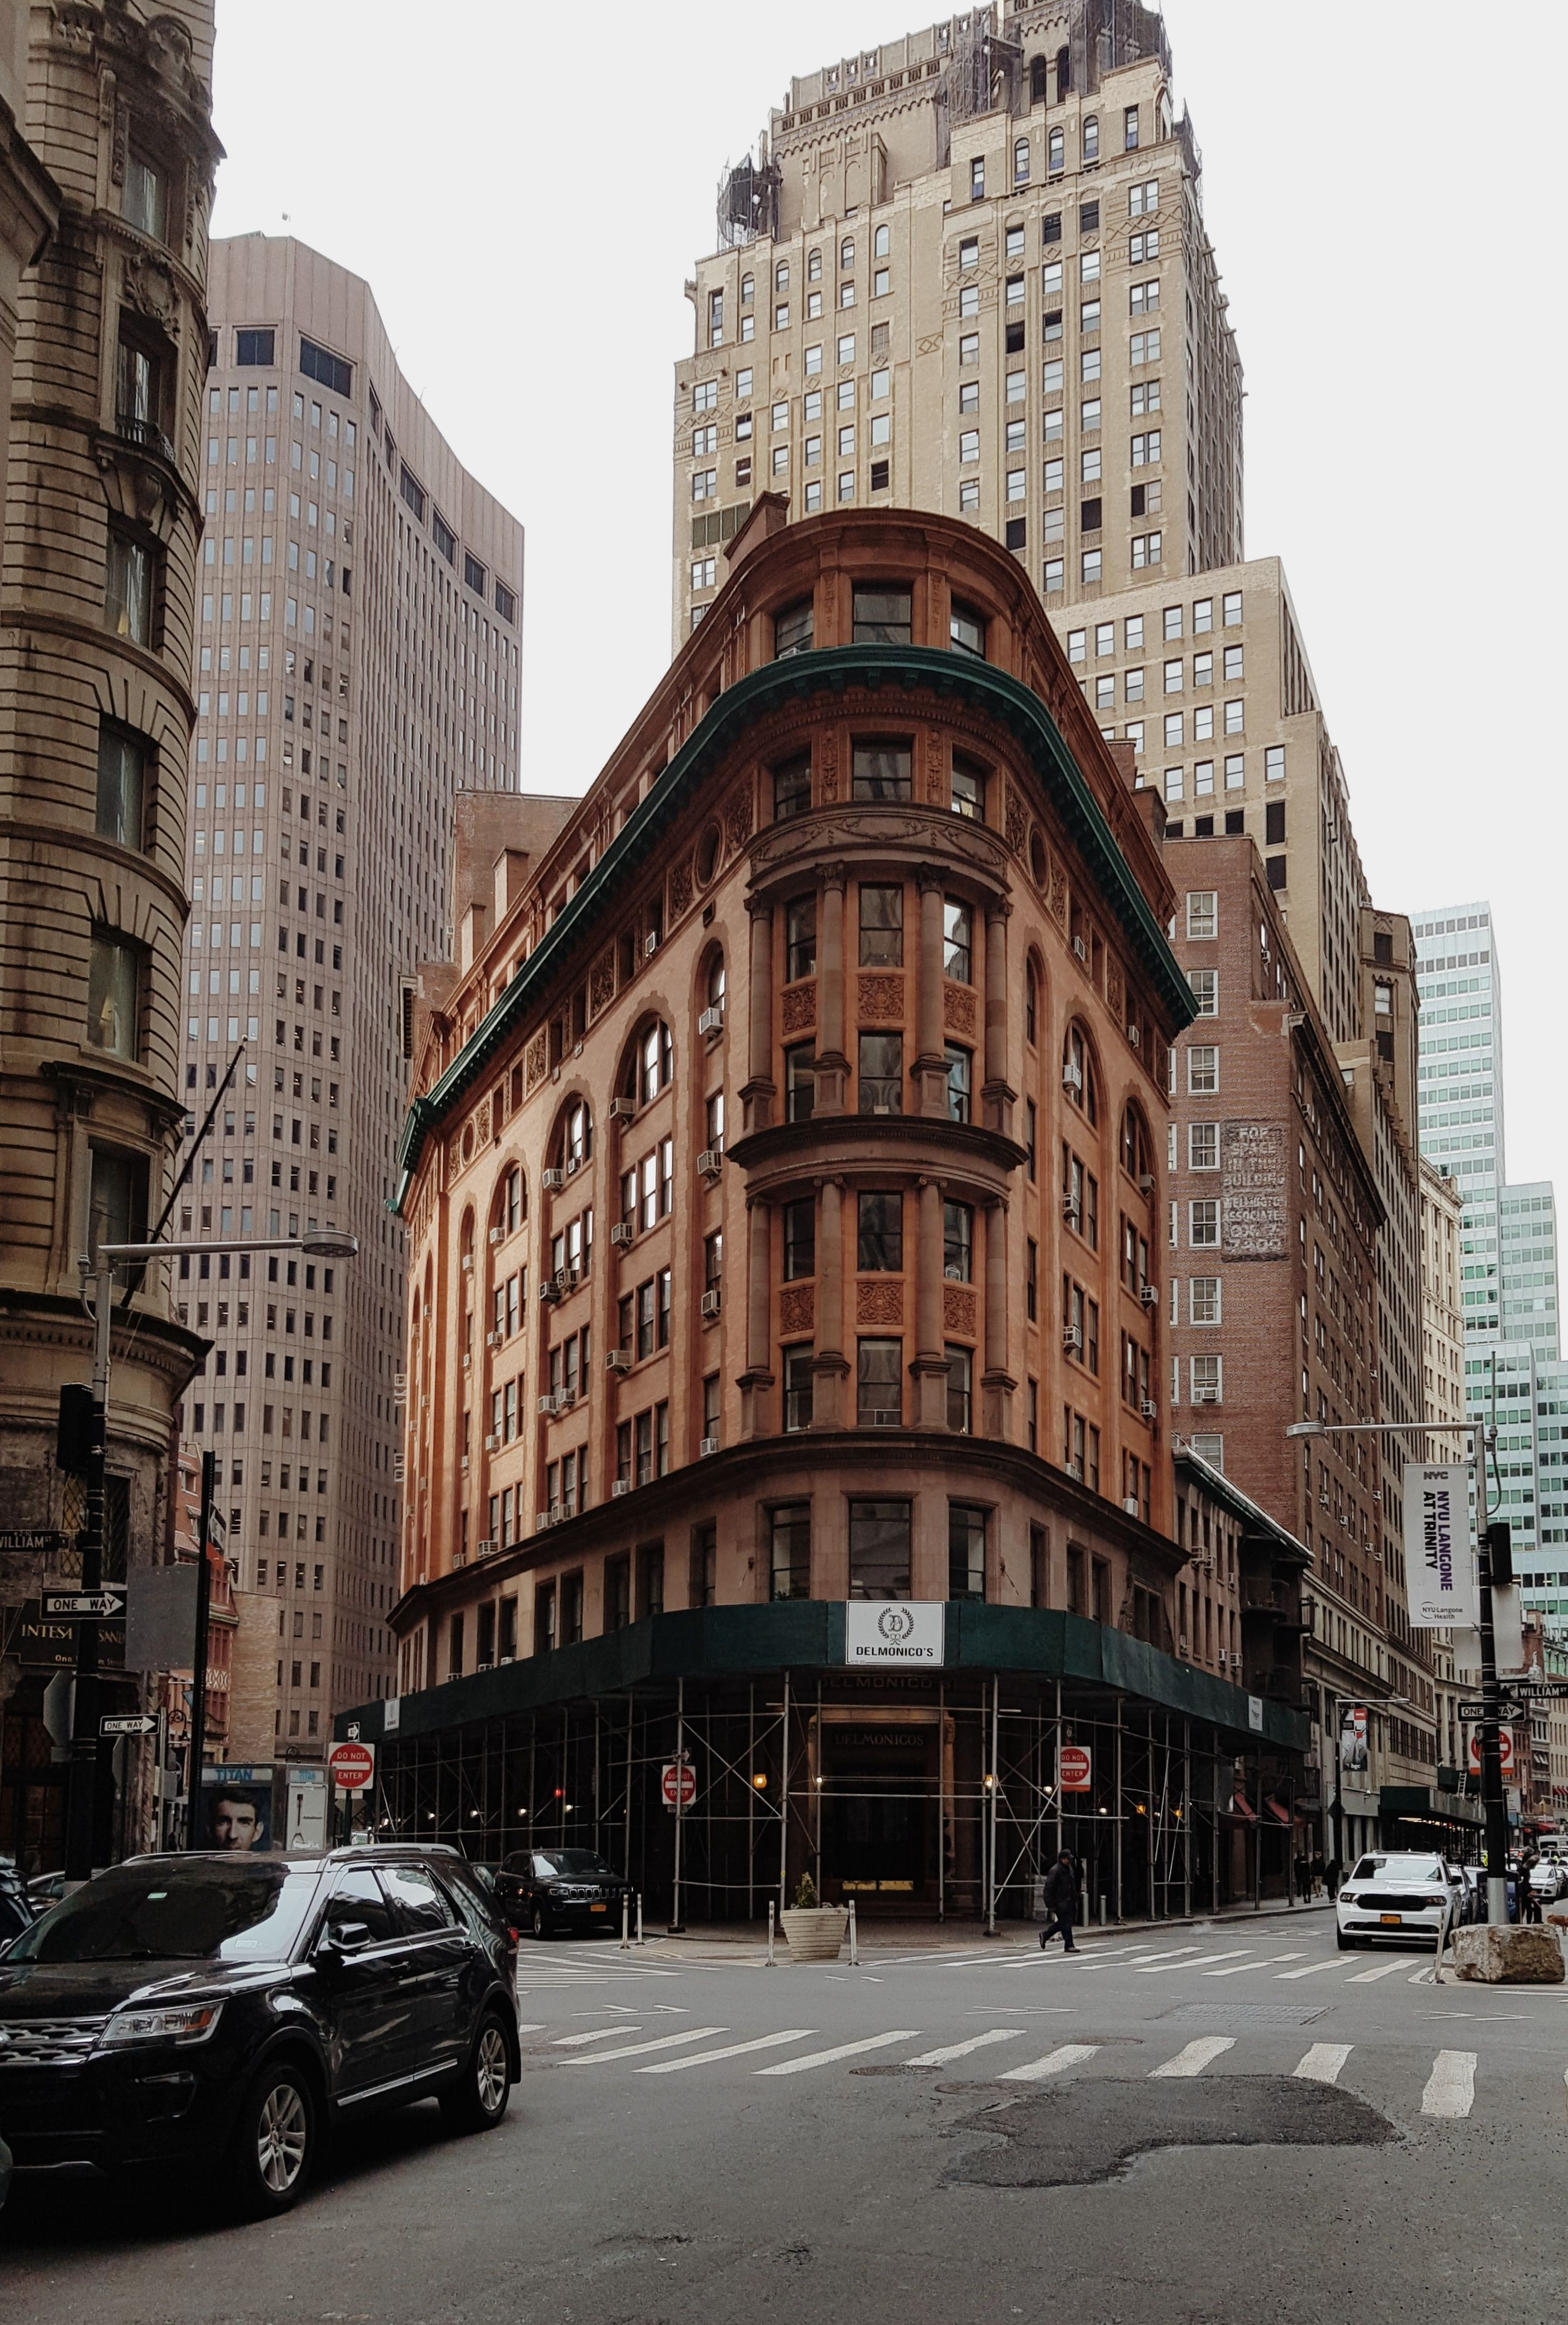 Pin by With Lonca on New York City in January in 2019 | New